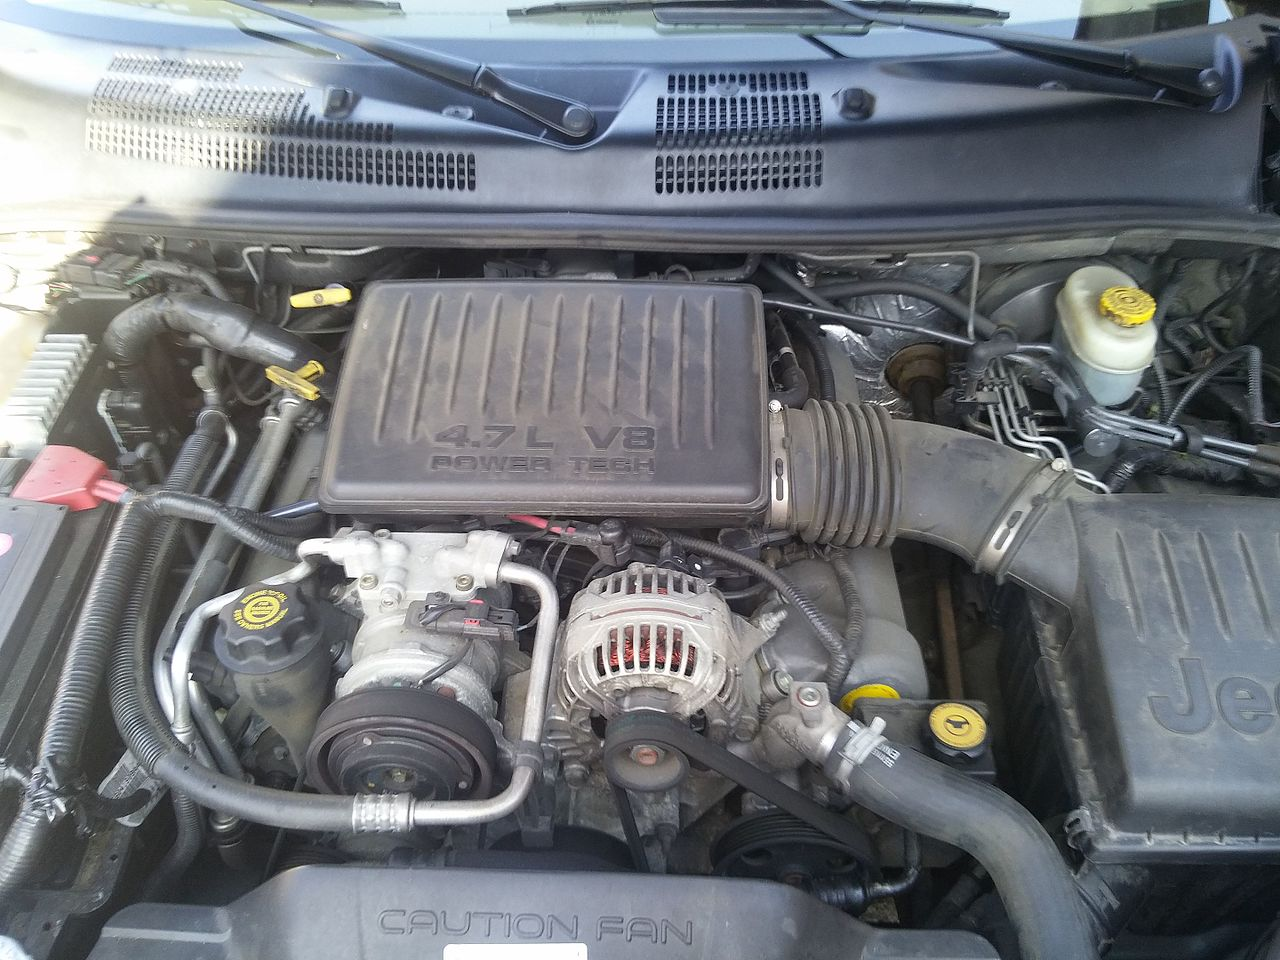 Cargo Van as well Can Am Outlander Oil Filter Location besides File 4 7 Powertech engine Jeep WJ likewise Watch also 7. on 2006 dodge ram fuel tank